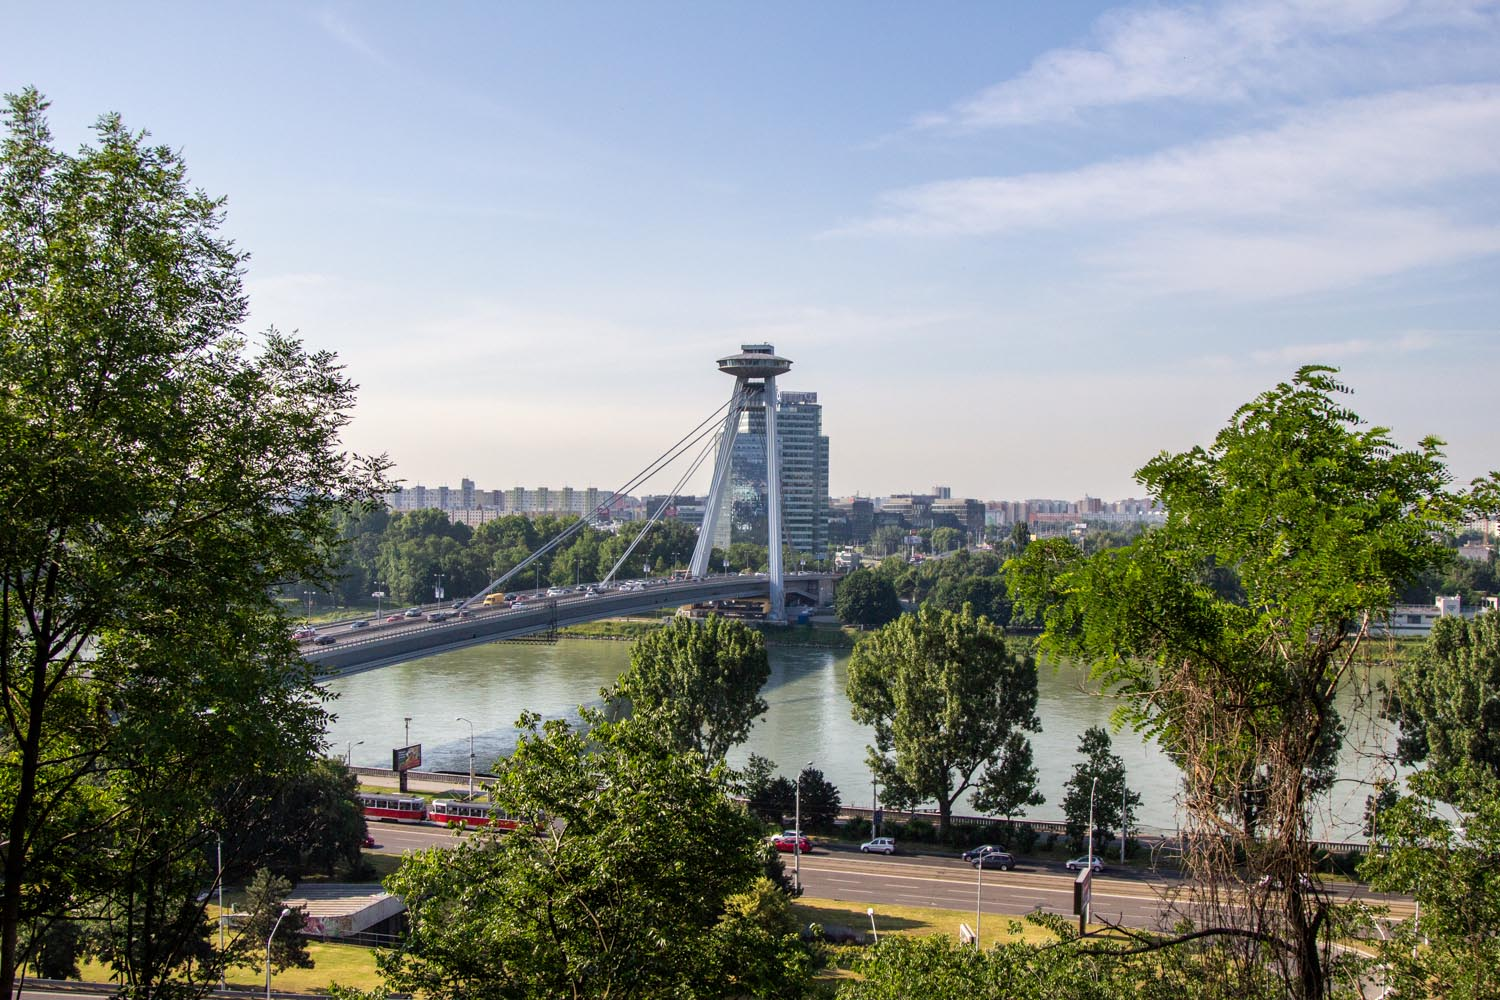 The UFO bridge. One of the top things to do in Bratislava on a budget